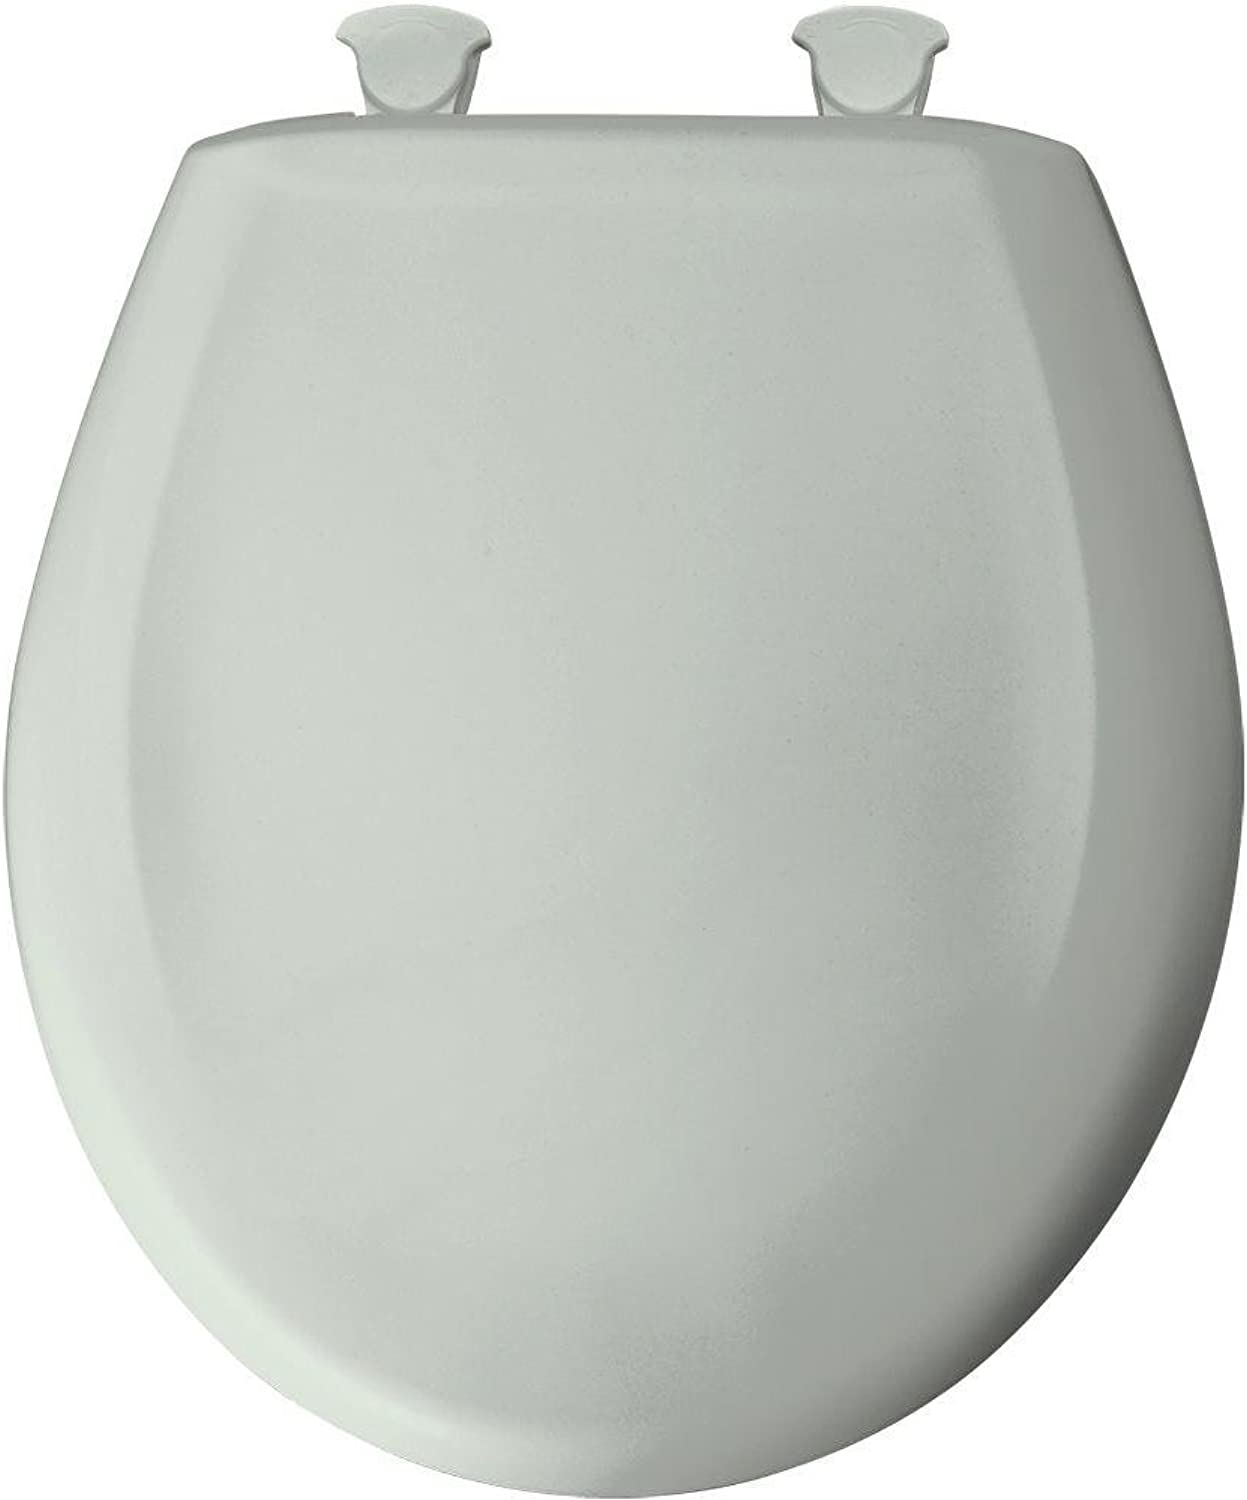 Church Seat 200SLOWT 495 Round Closed Front Toilet Seat in Sage